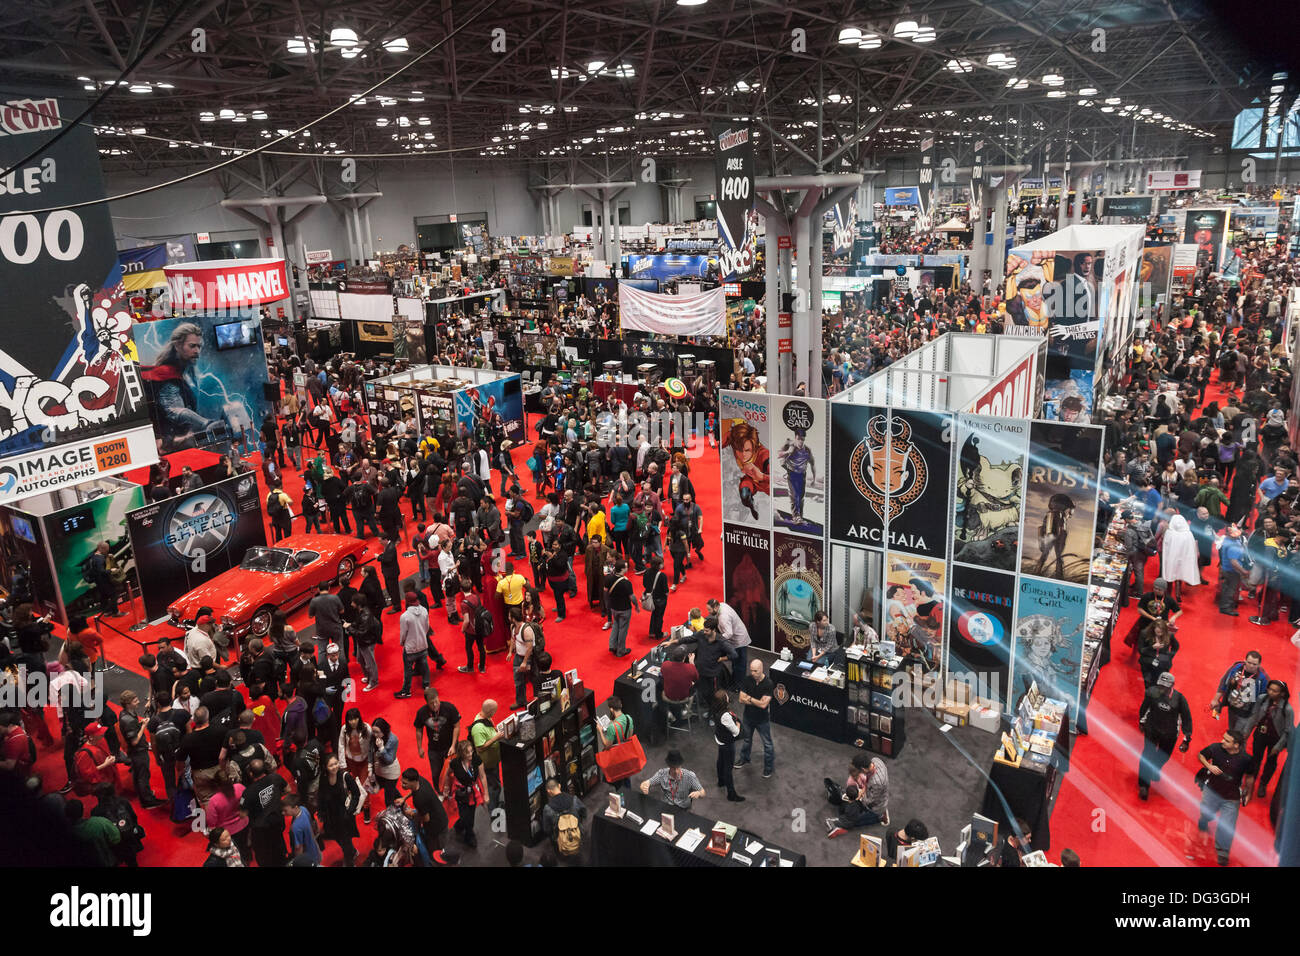 New York, USA. 13th Oct, 2013. General view of atmosphere during Comic Con 2013 at The Jacob K. Javits Convention Center on October 13, 2013 in New York City. Credit:  Sam Aronov/Alamy Live News - Stock Image